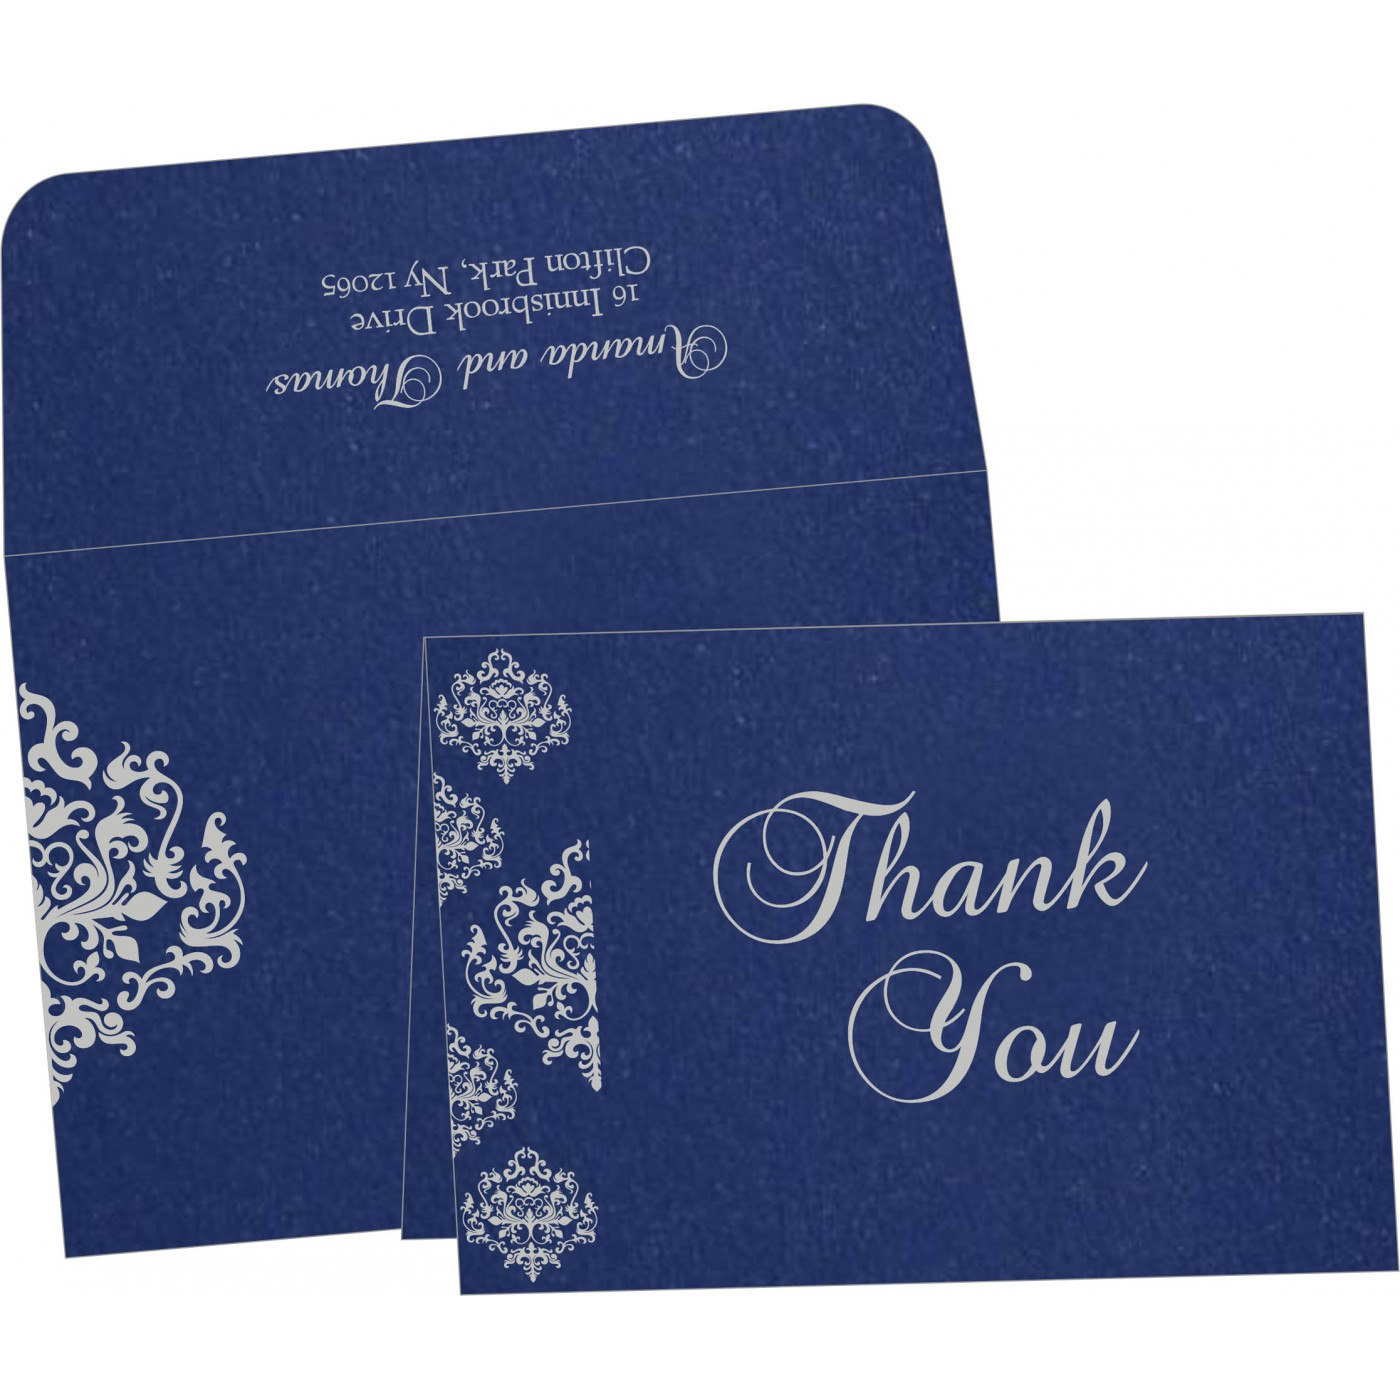 Thank You Cards : TYC-8254C - 123WeddingCards